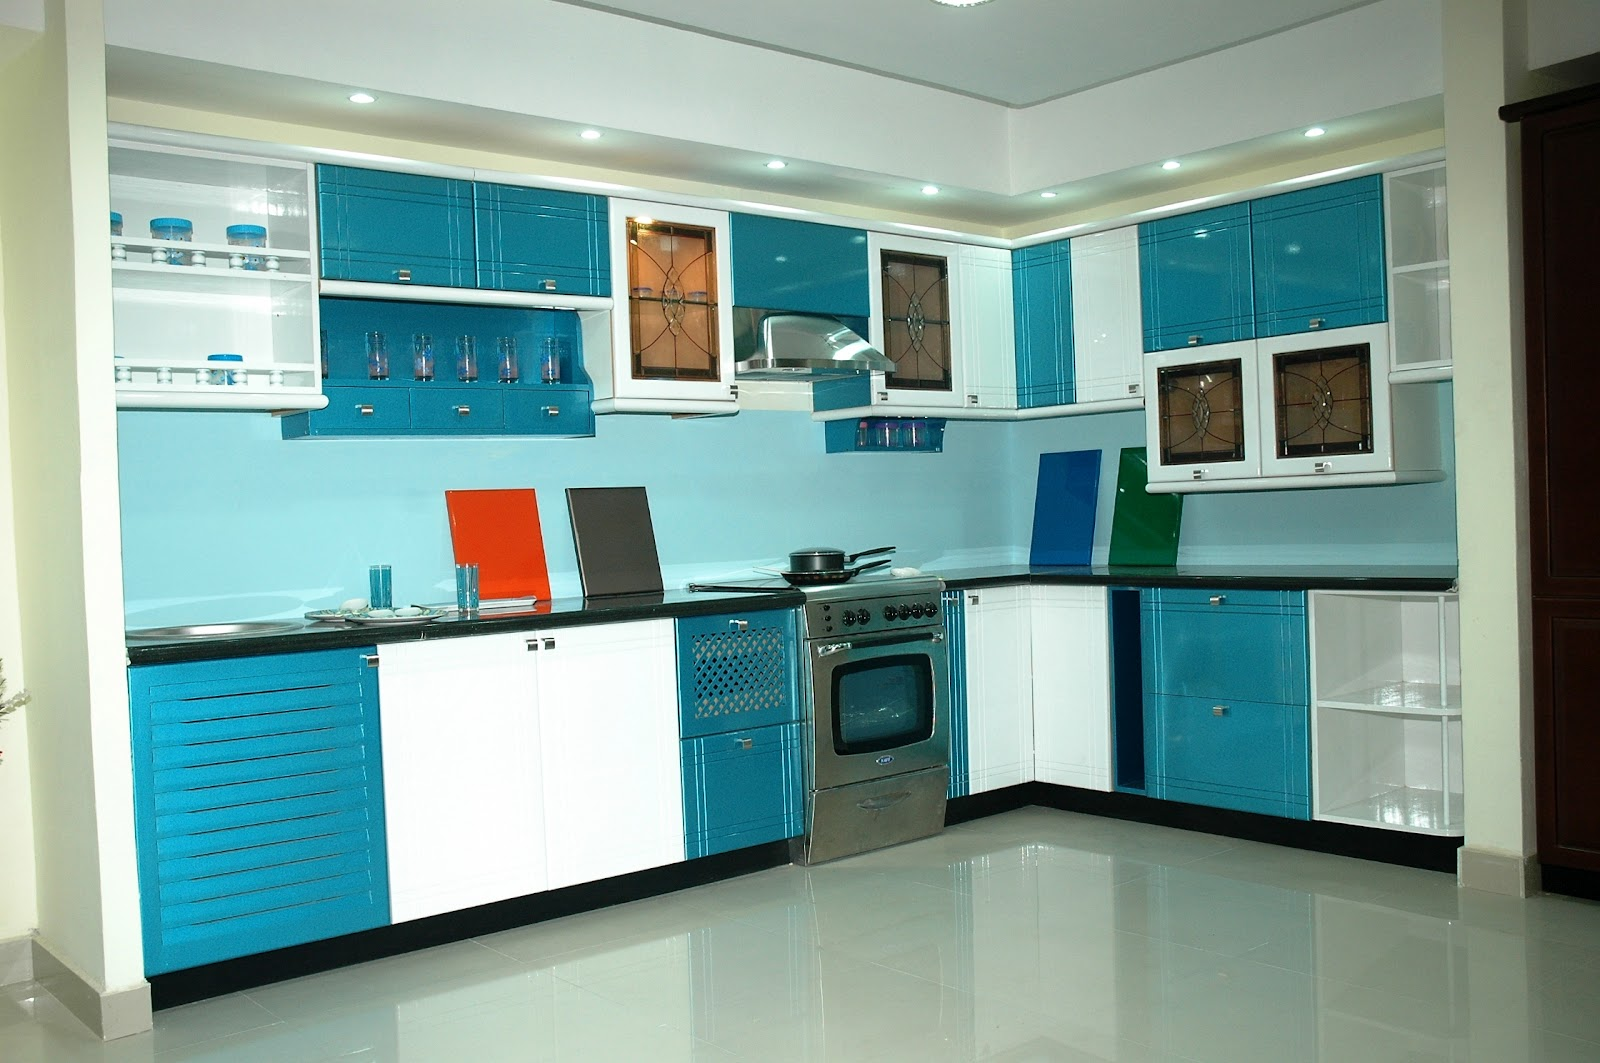 Image gallery for interior, modular kitchen, and painting | Sai ...